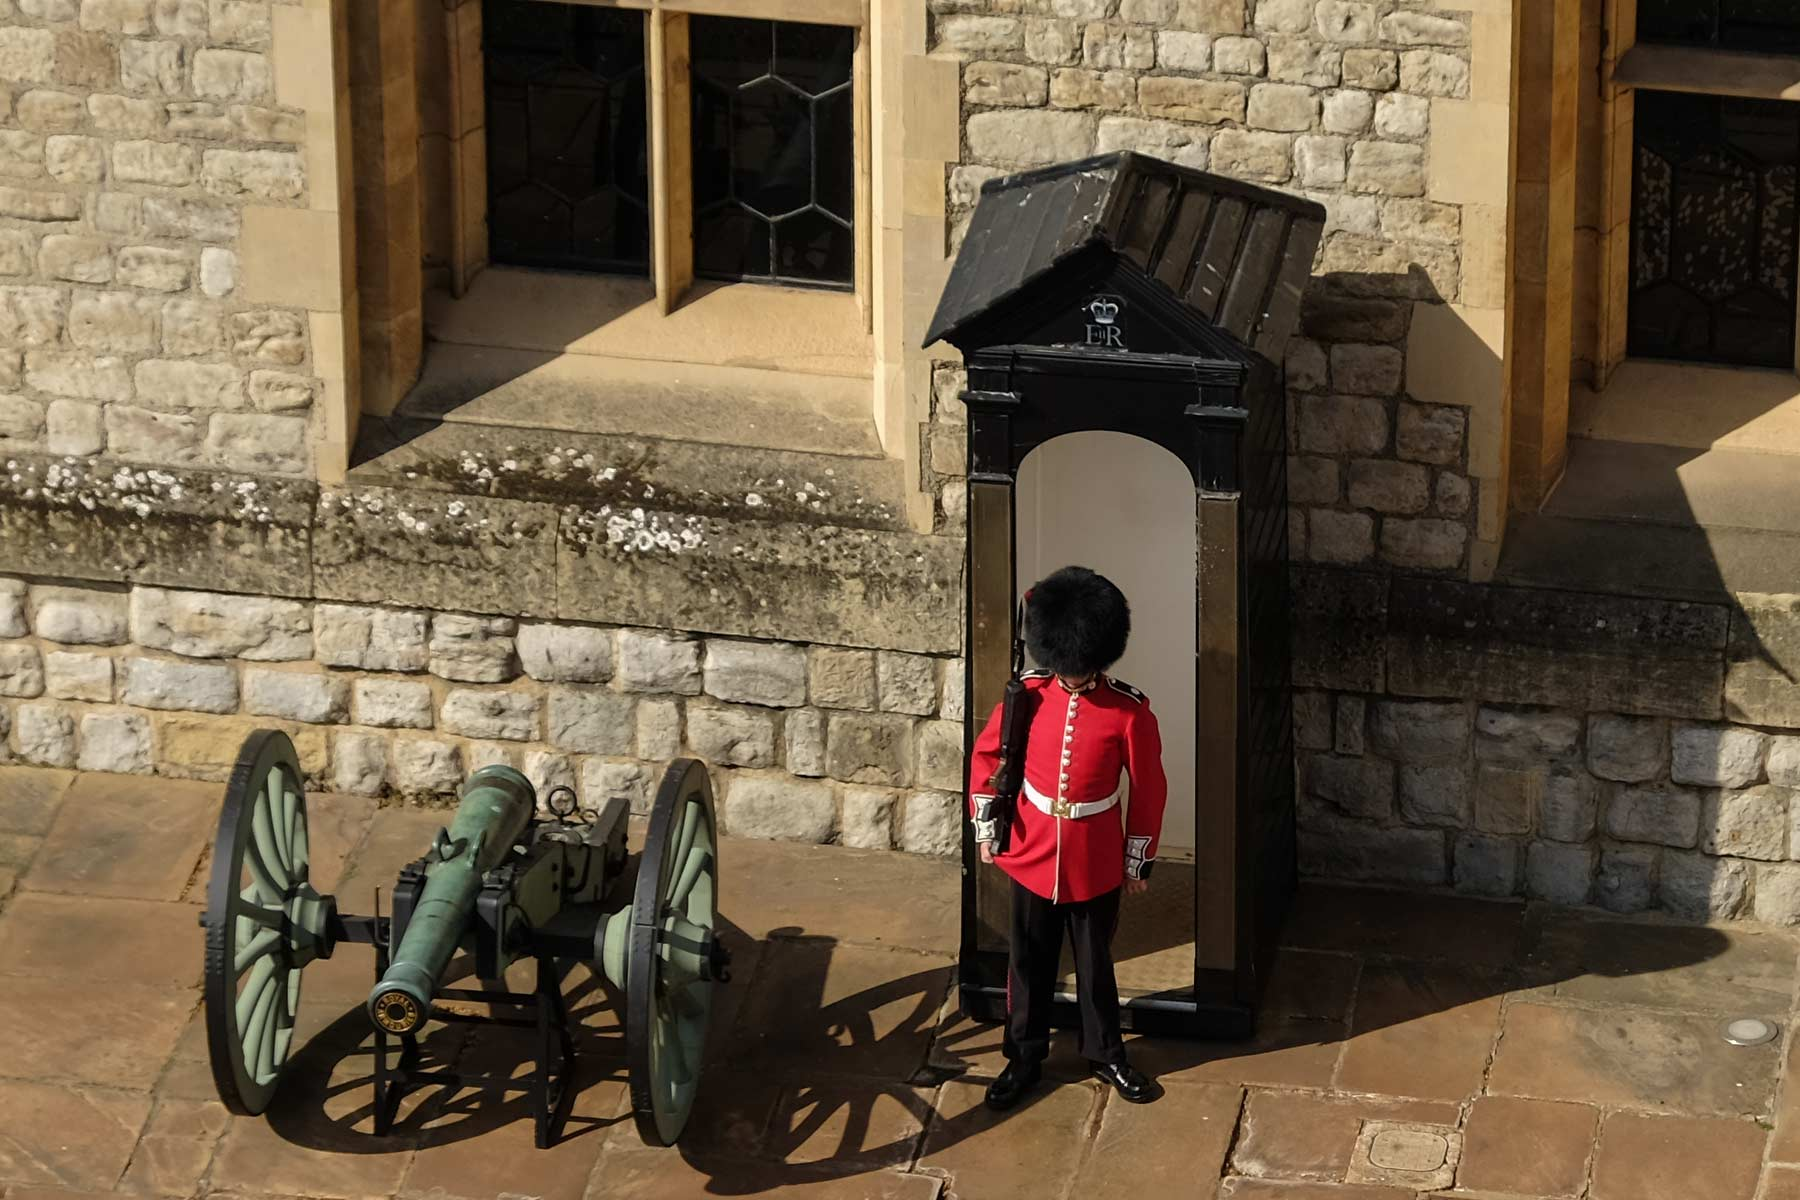 Queens Guard im Tower of London in London, England